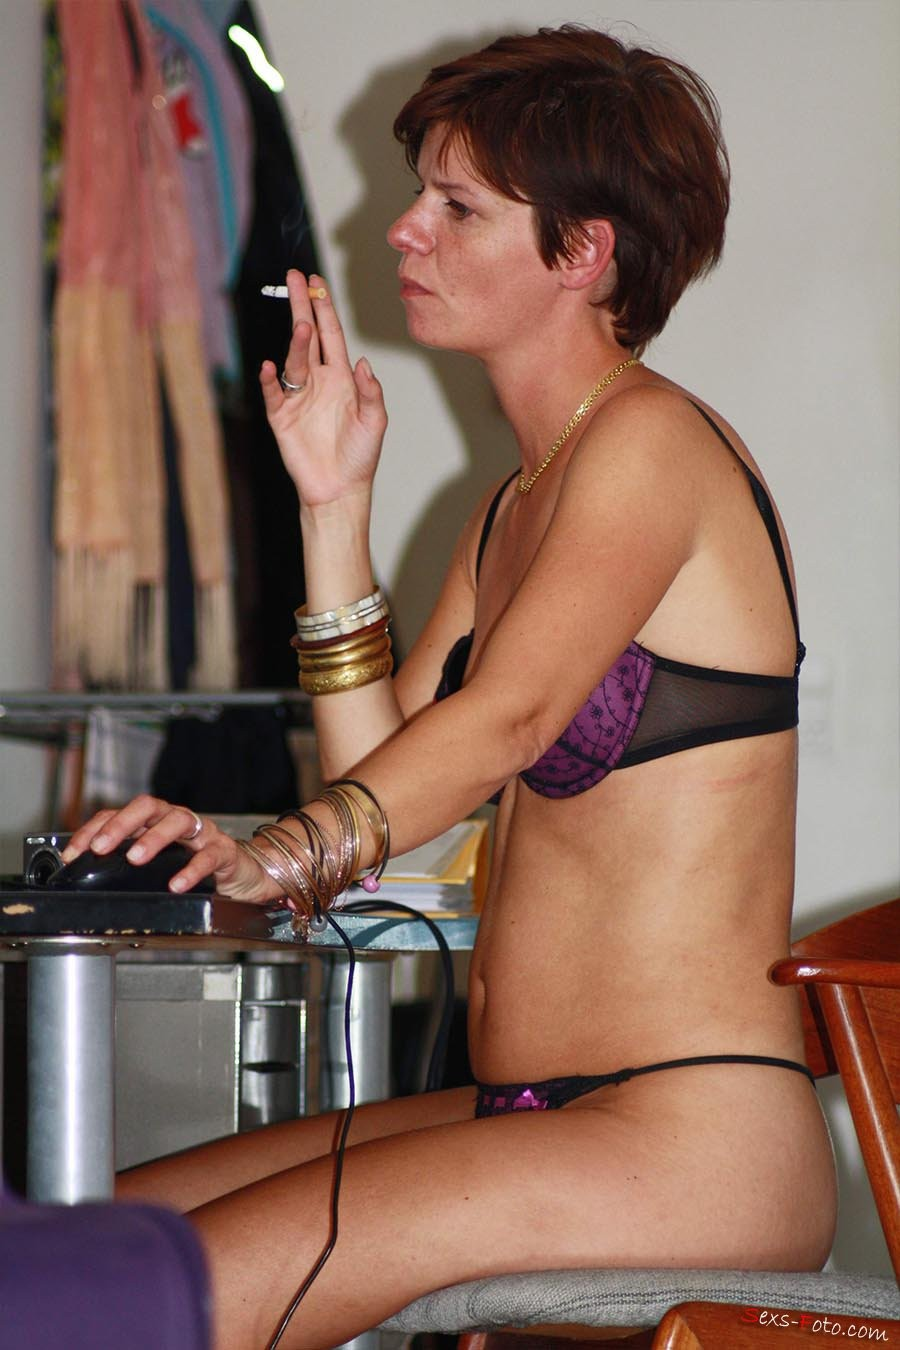 adult head shop online – Other